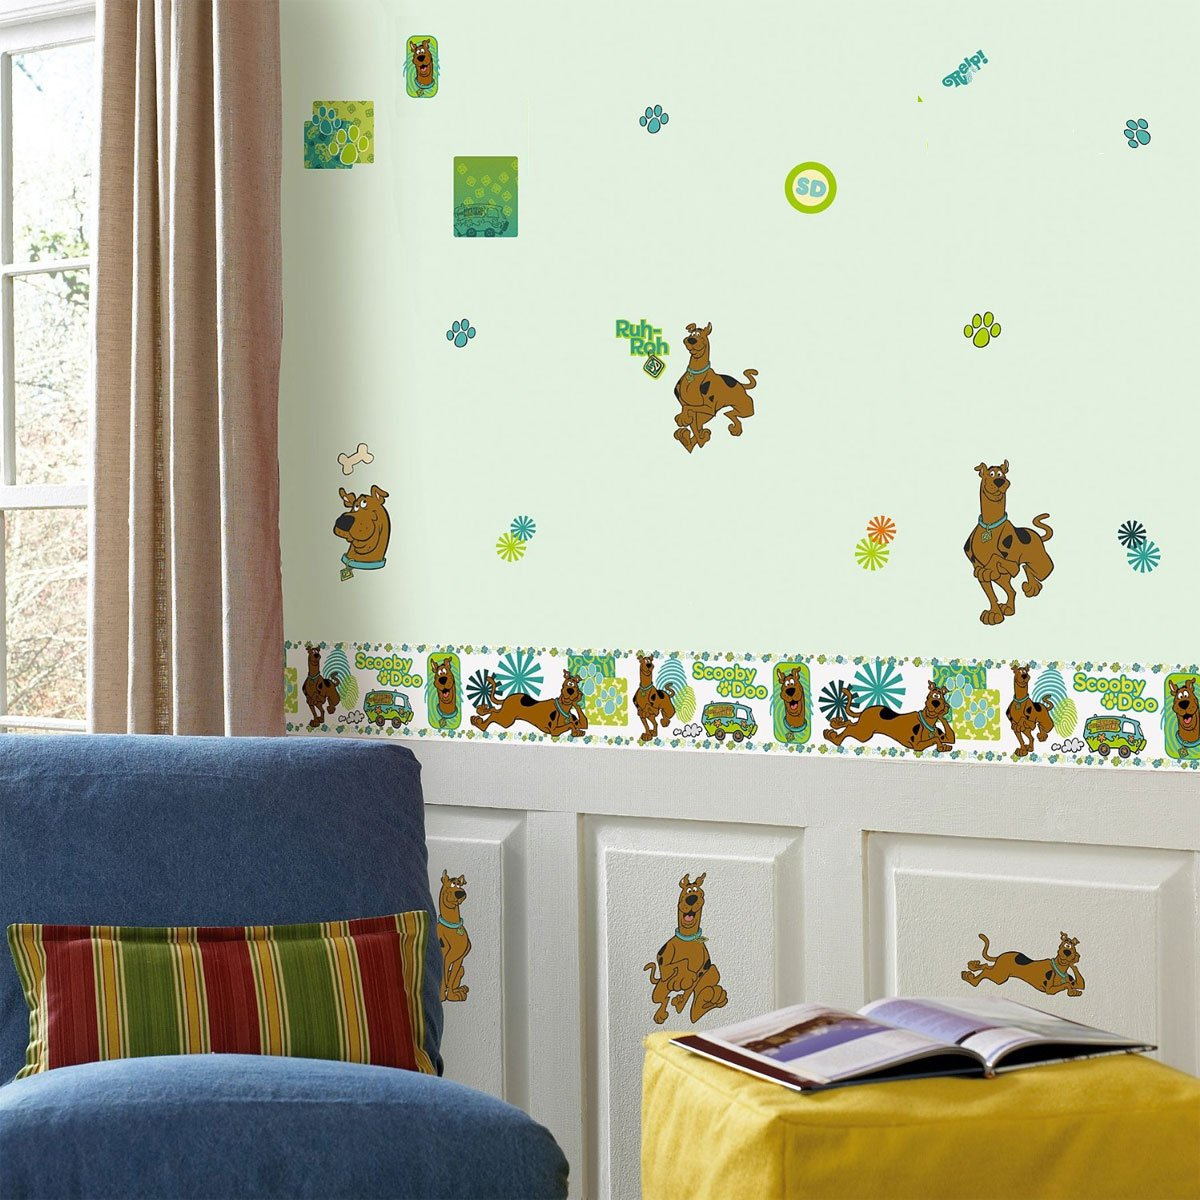 Scooby Doo Bedroom Accessories Scooby Doo Wall Stickers Decals 35 Wall Stickers Wall Borders